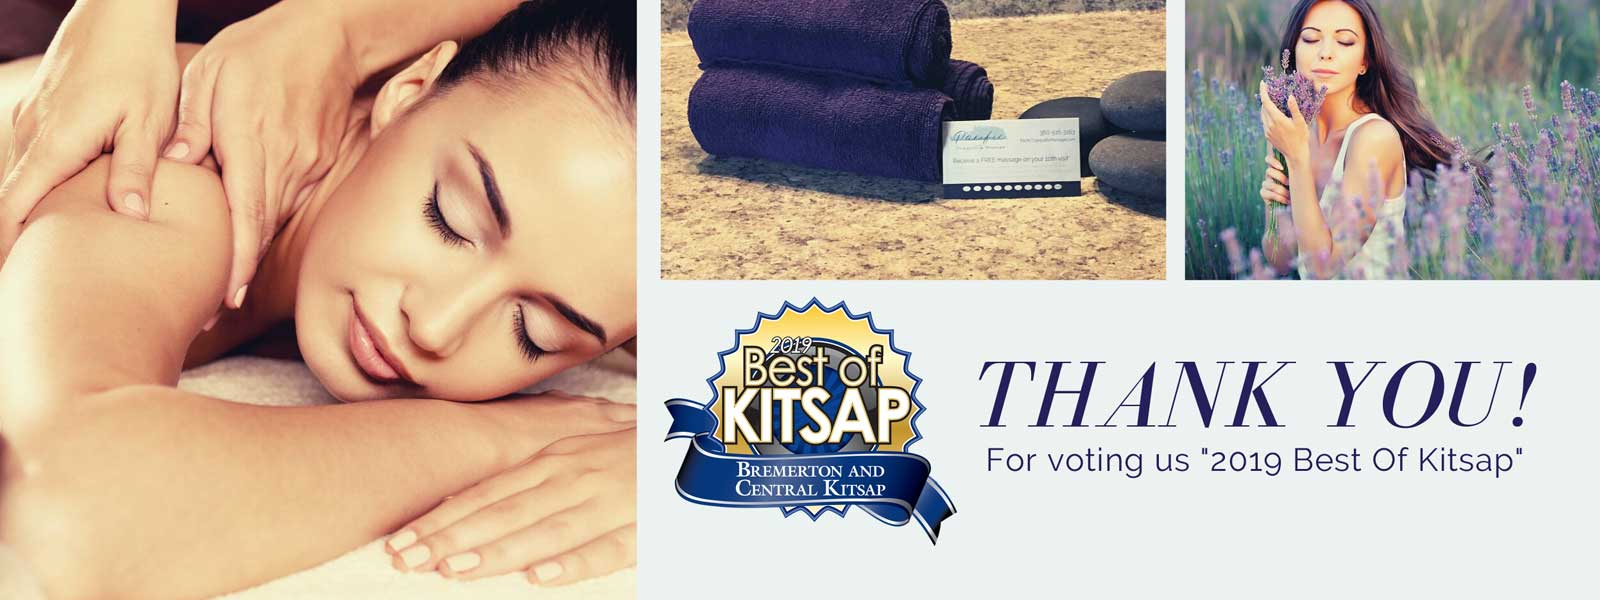 Voted Best of Kitsap 2019 Central Kitsap and Bremerton.